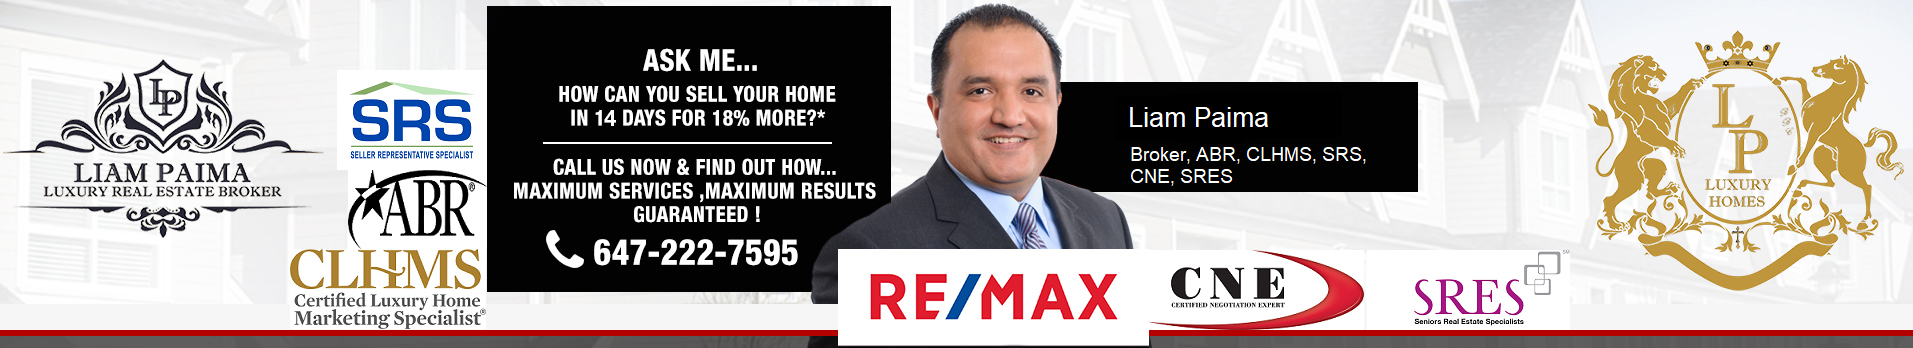 #1 Low Commission Real Estate Agent With Best Low Real Estate Commission Service In Toronto, Vaughan, Kleinburg, Oakville, Richmond Hill, Mississauga, Brampton, Milton, Caledon, Georgetown, Burlington, Orangeville, Markham. - Page - 12